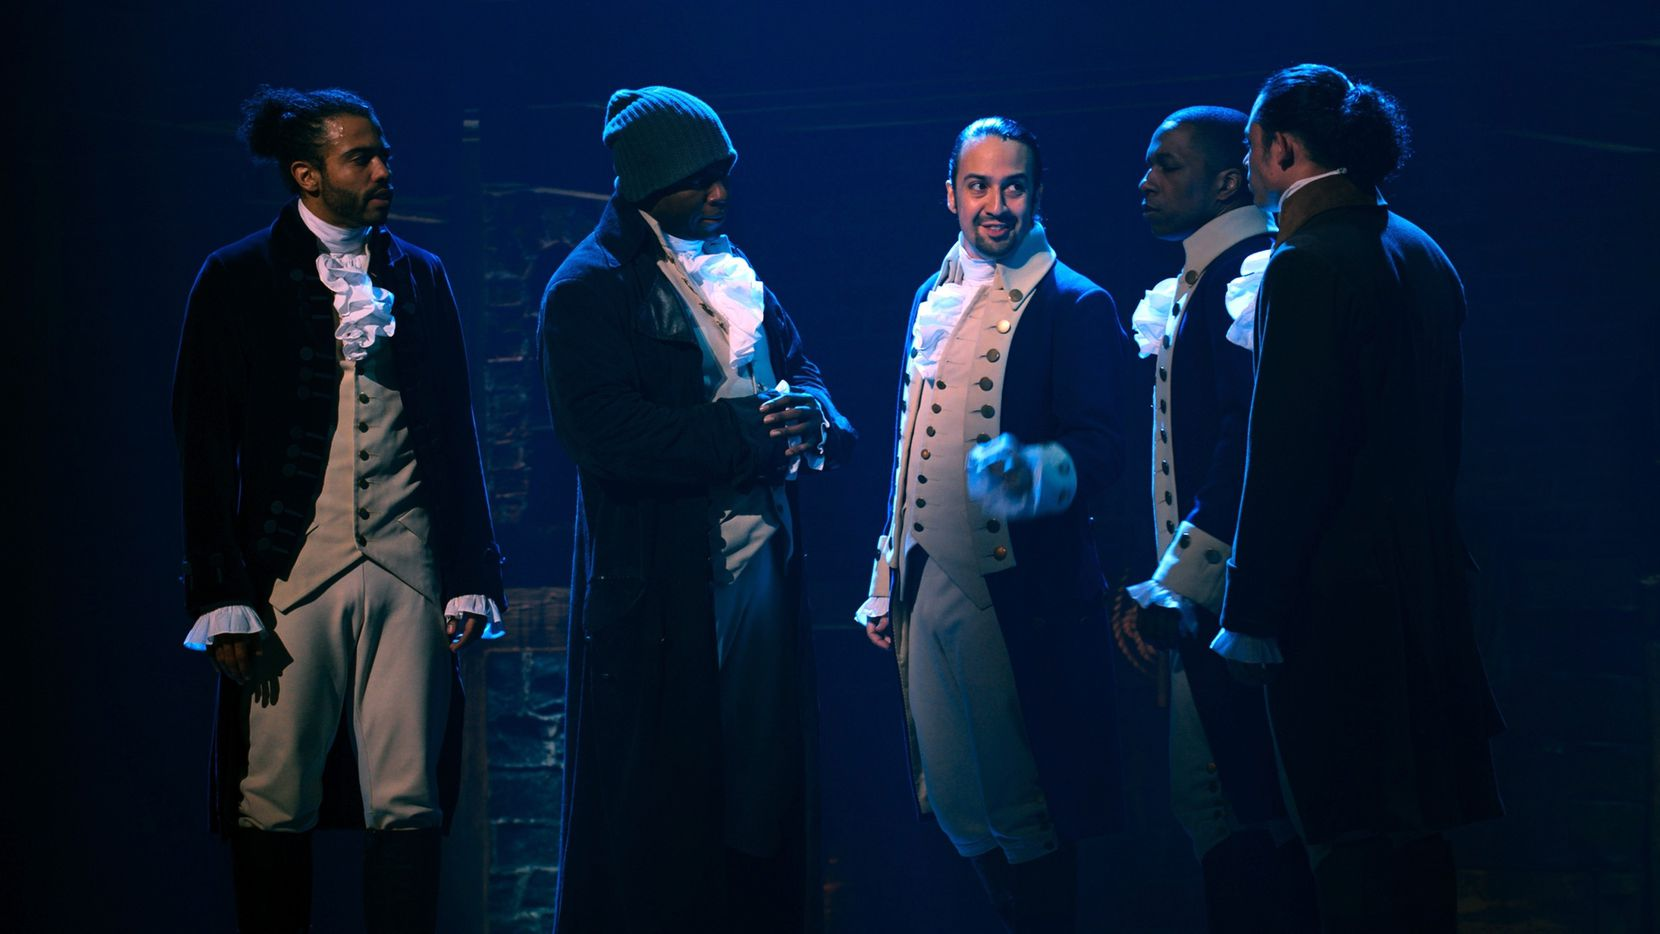 """Daveed Diggs (from left), Okieriete Onaodowan, Lin-Manuel Miranda, Leslie Odom Jr. and Anthony Ramos appear in the filmed version of the Broadway musical """"Hamilton,"""" which premieres on Disney+ on Friday."""